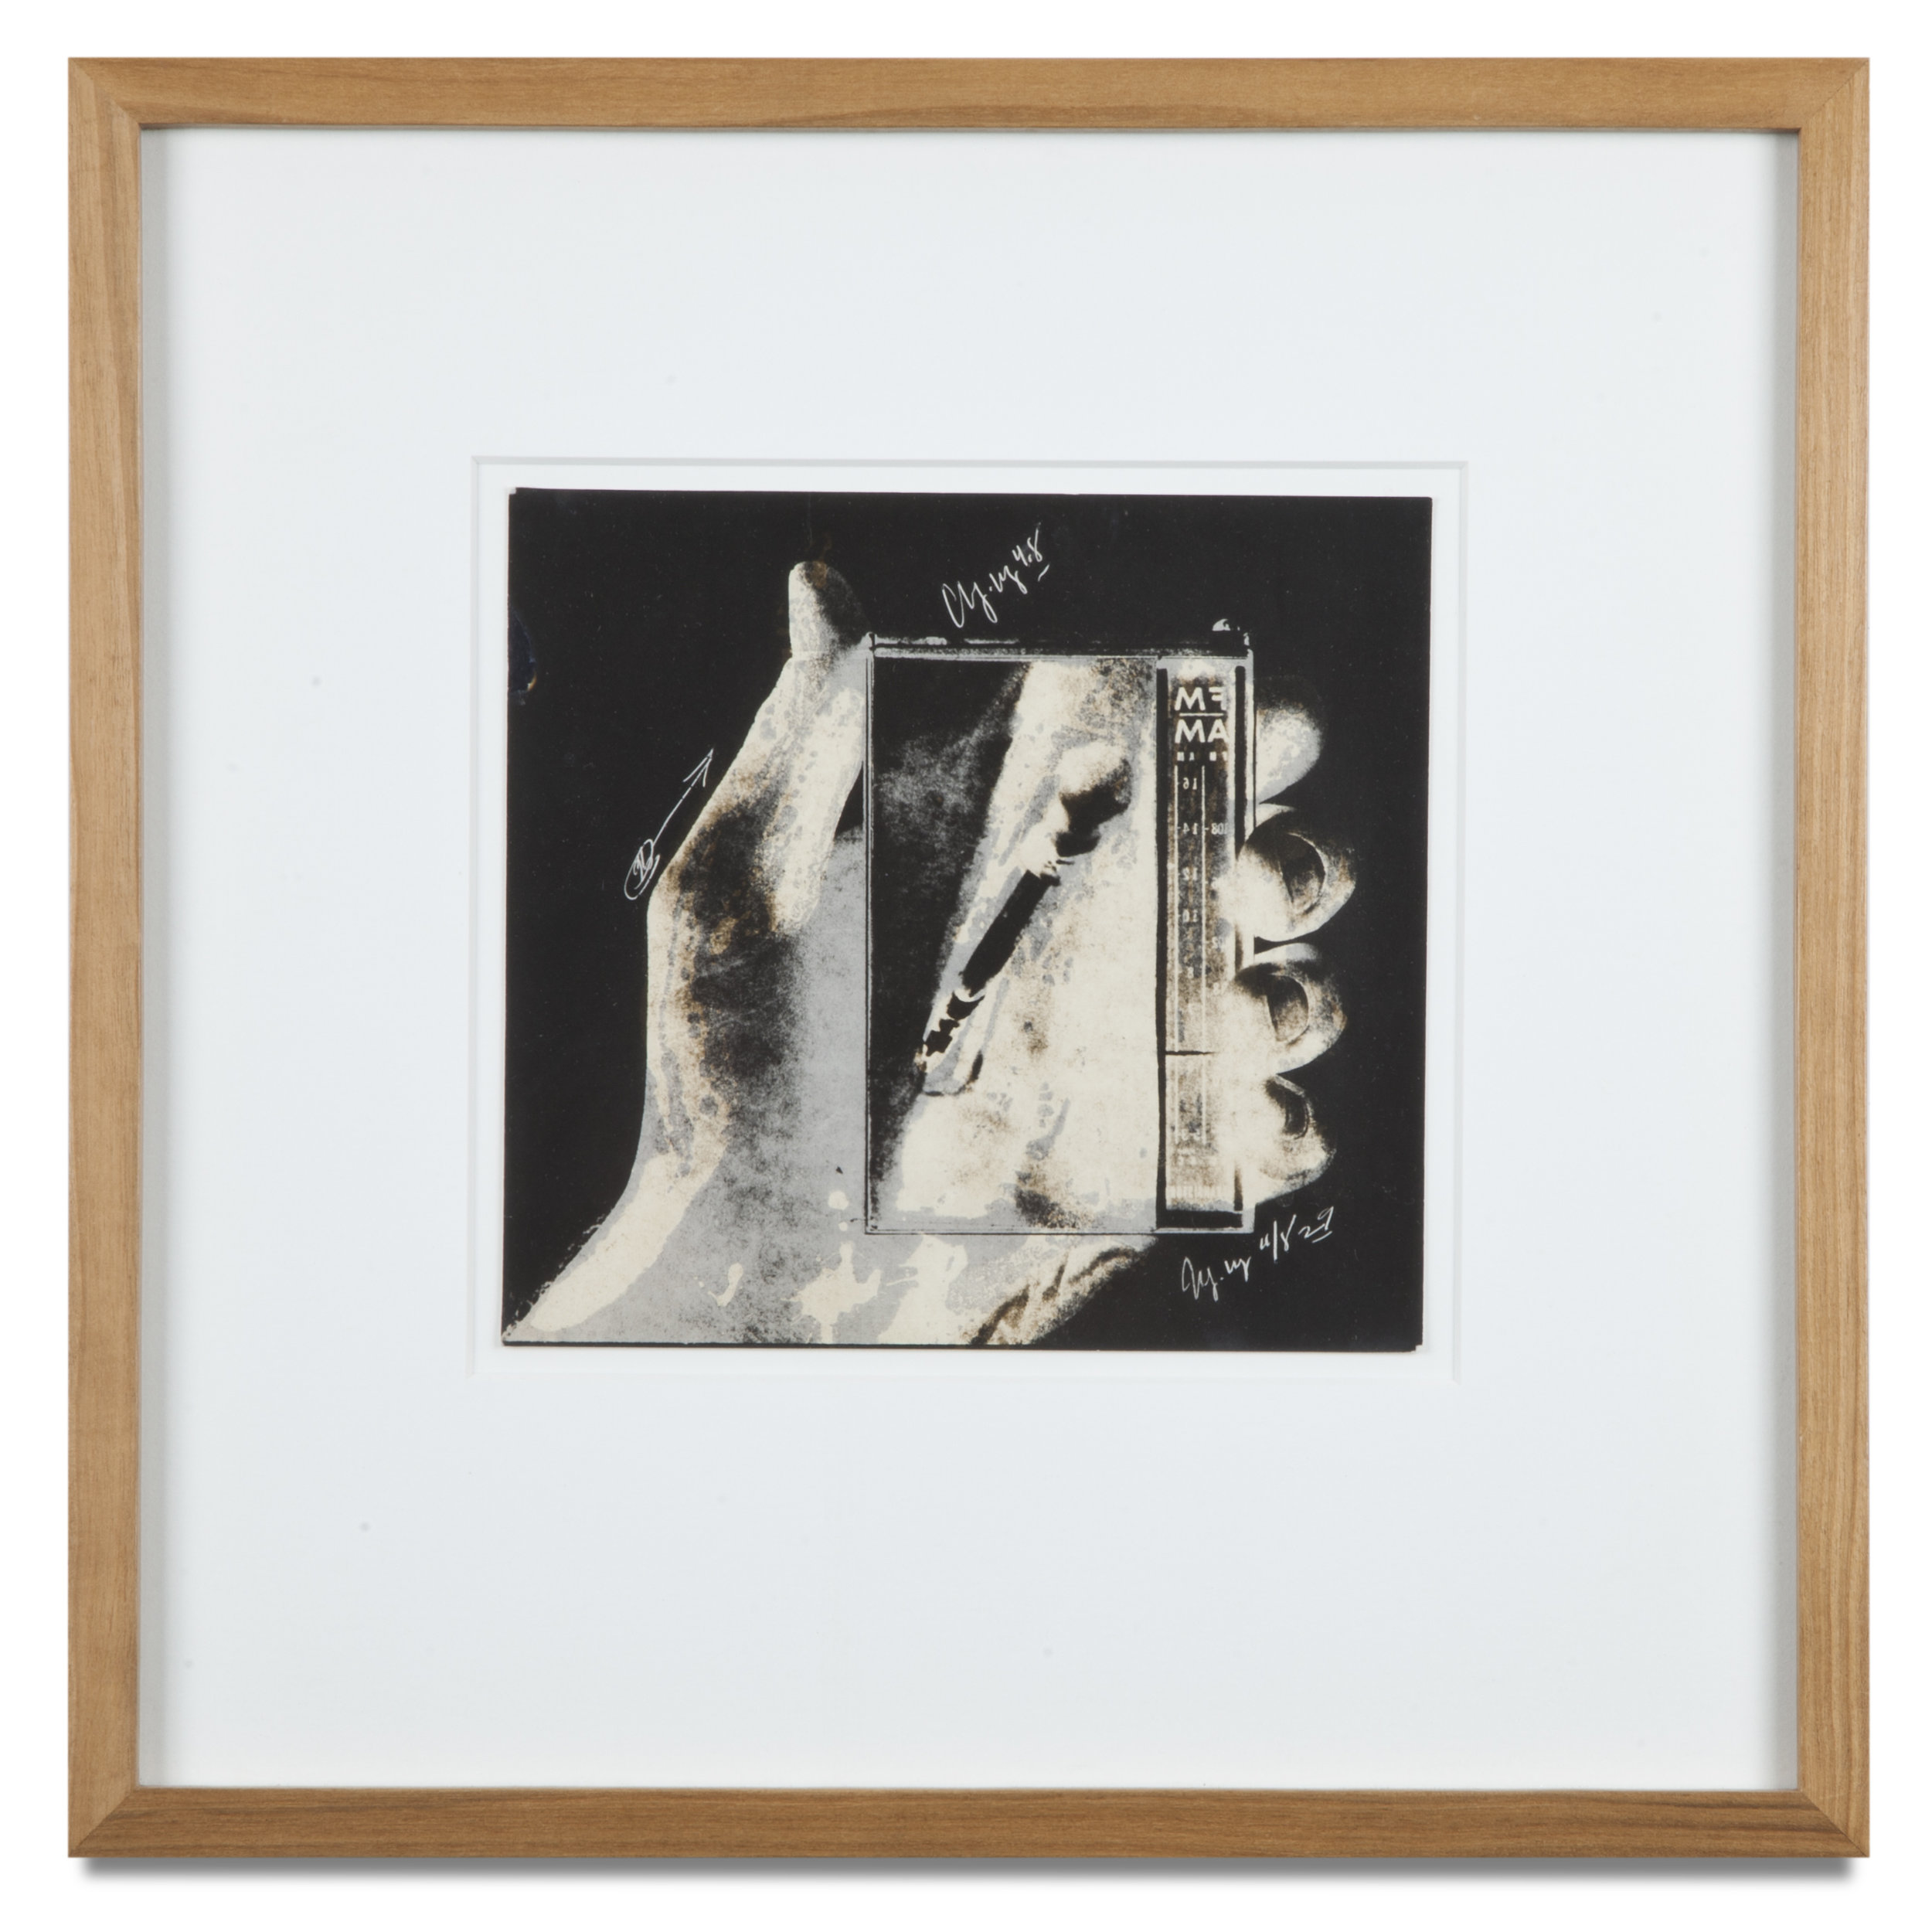 "Copy of ""Untitled #49"" , c. 1964-76, Verifax collage, 6 x 6 1/2 inches, framed 12 x 12 1/2 inches"